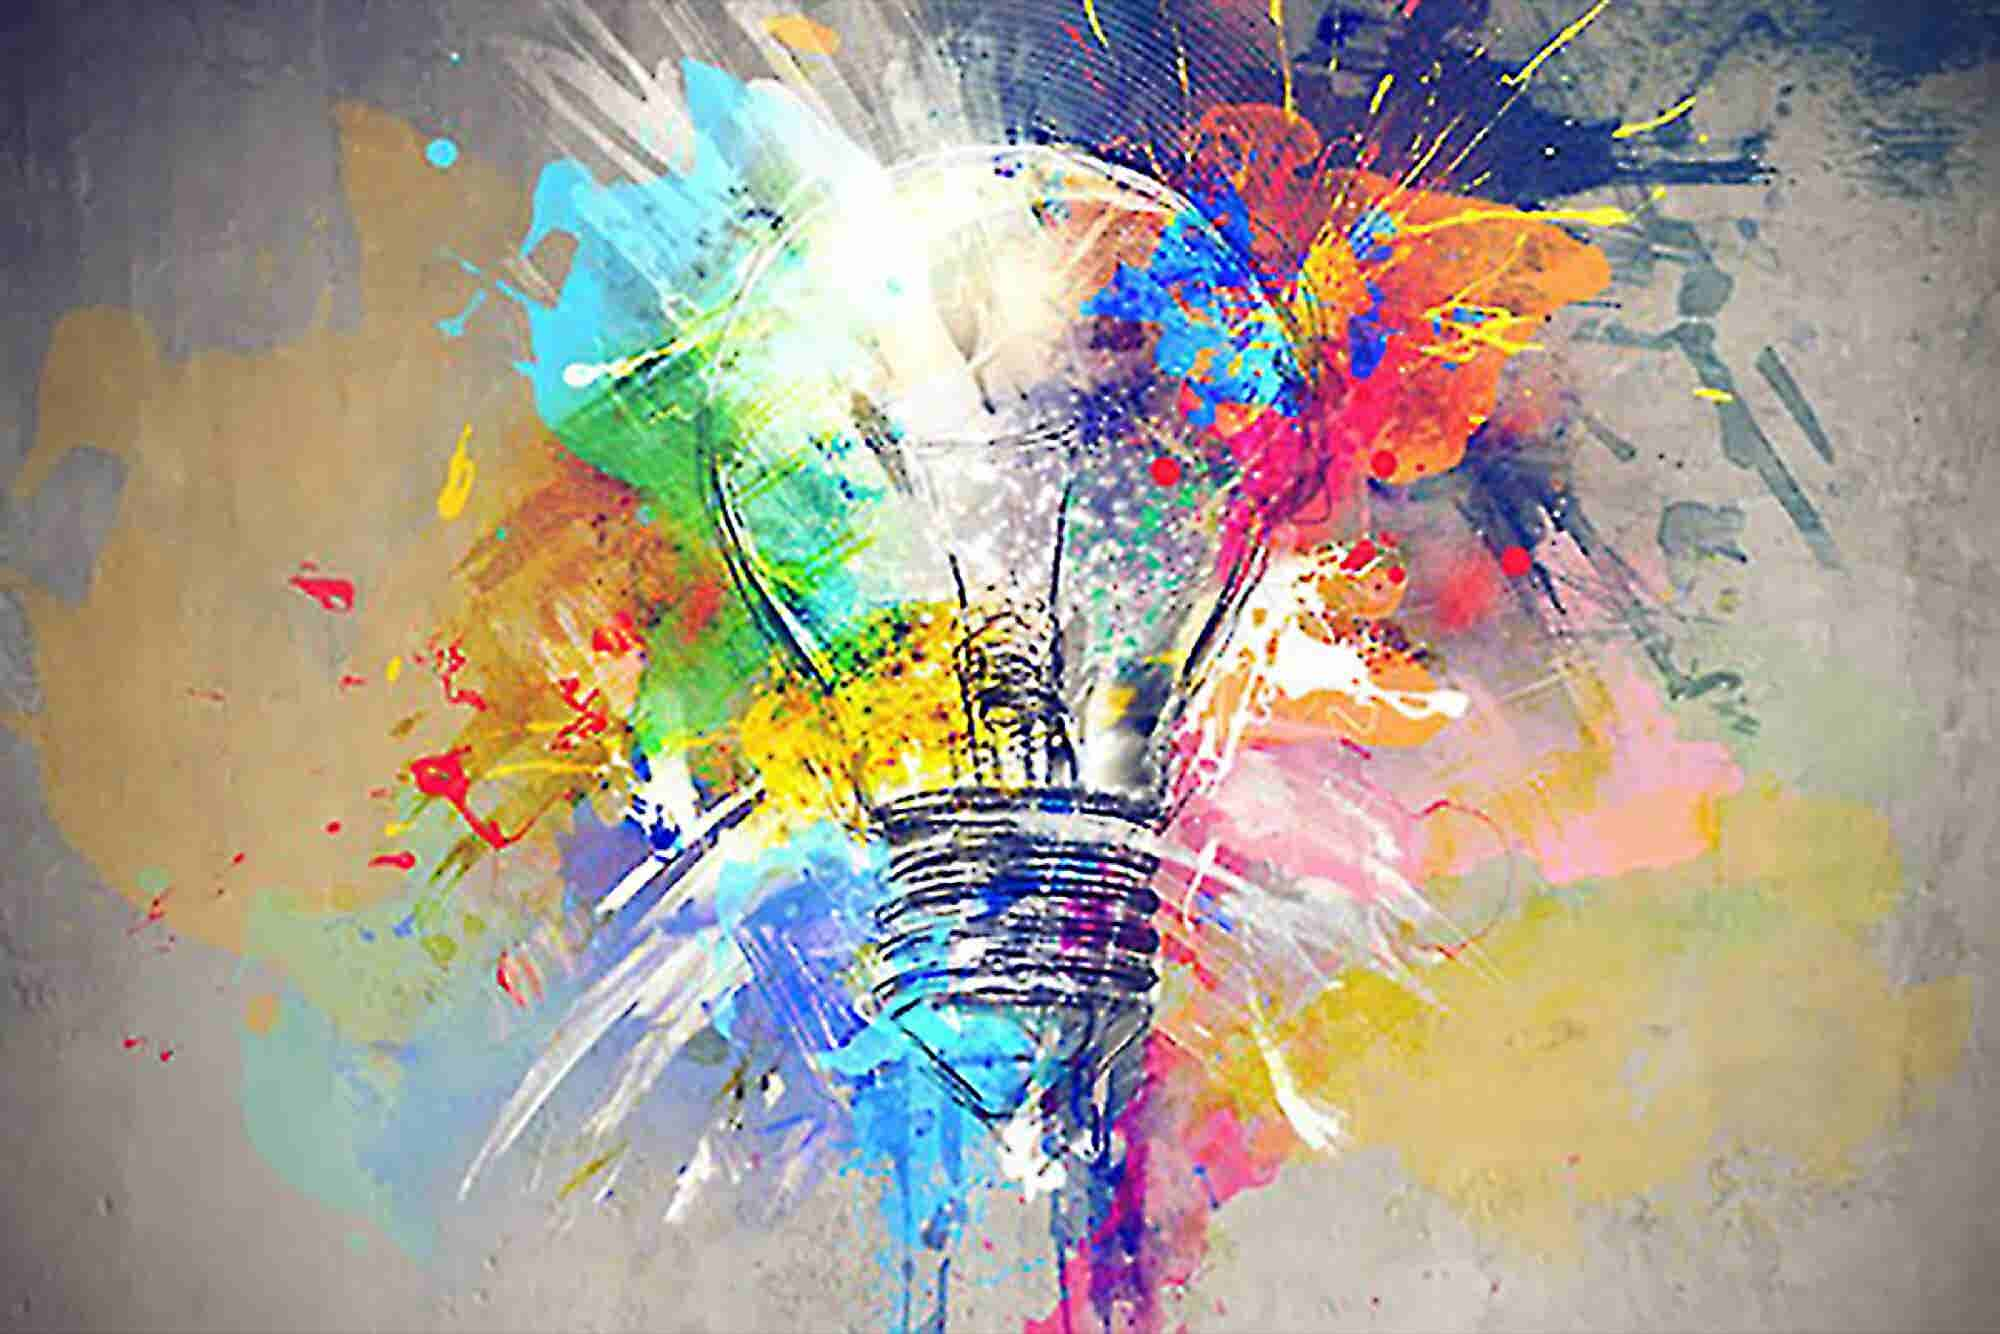 Maximizing the Potential of a Creative Mind